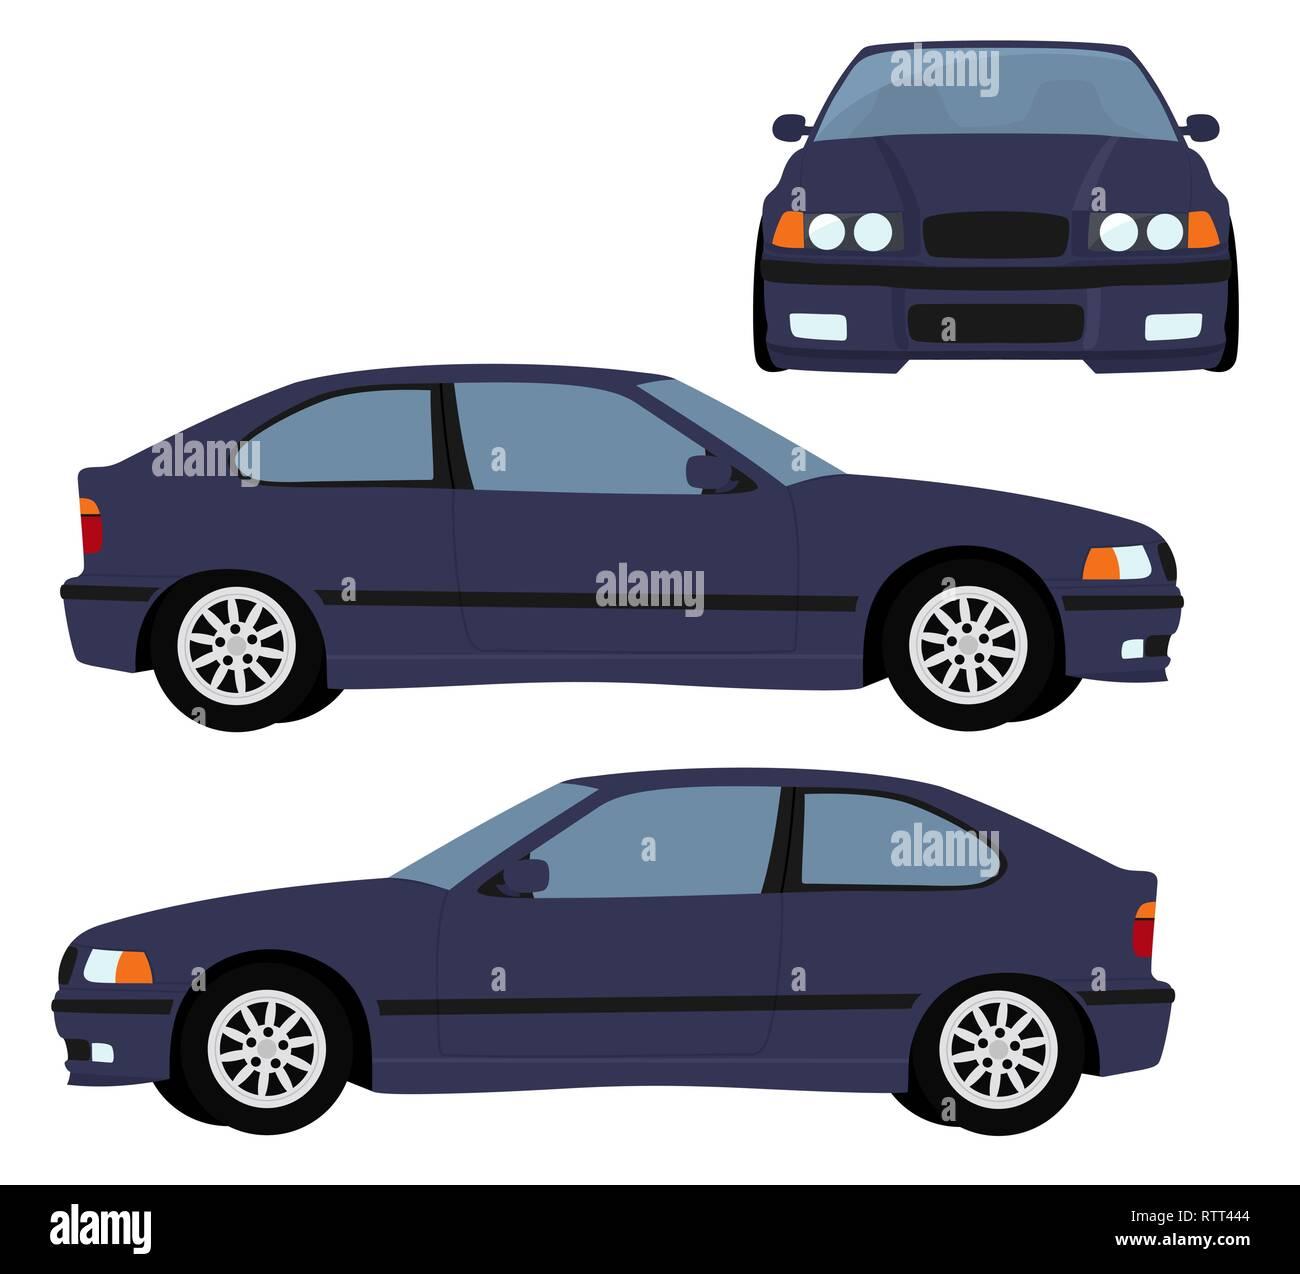 Car vector template on white background. hatchback car isolated. Vehicle branding mockup. Side, front view. Vector illustration on white background - Stock Image